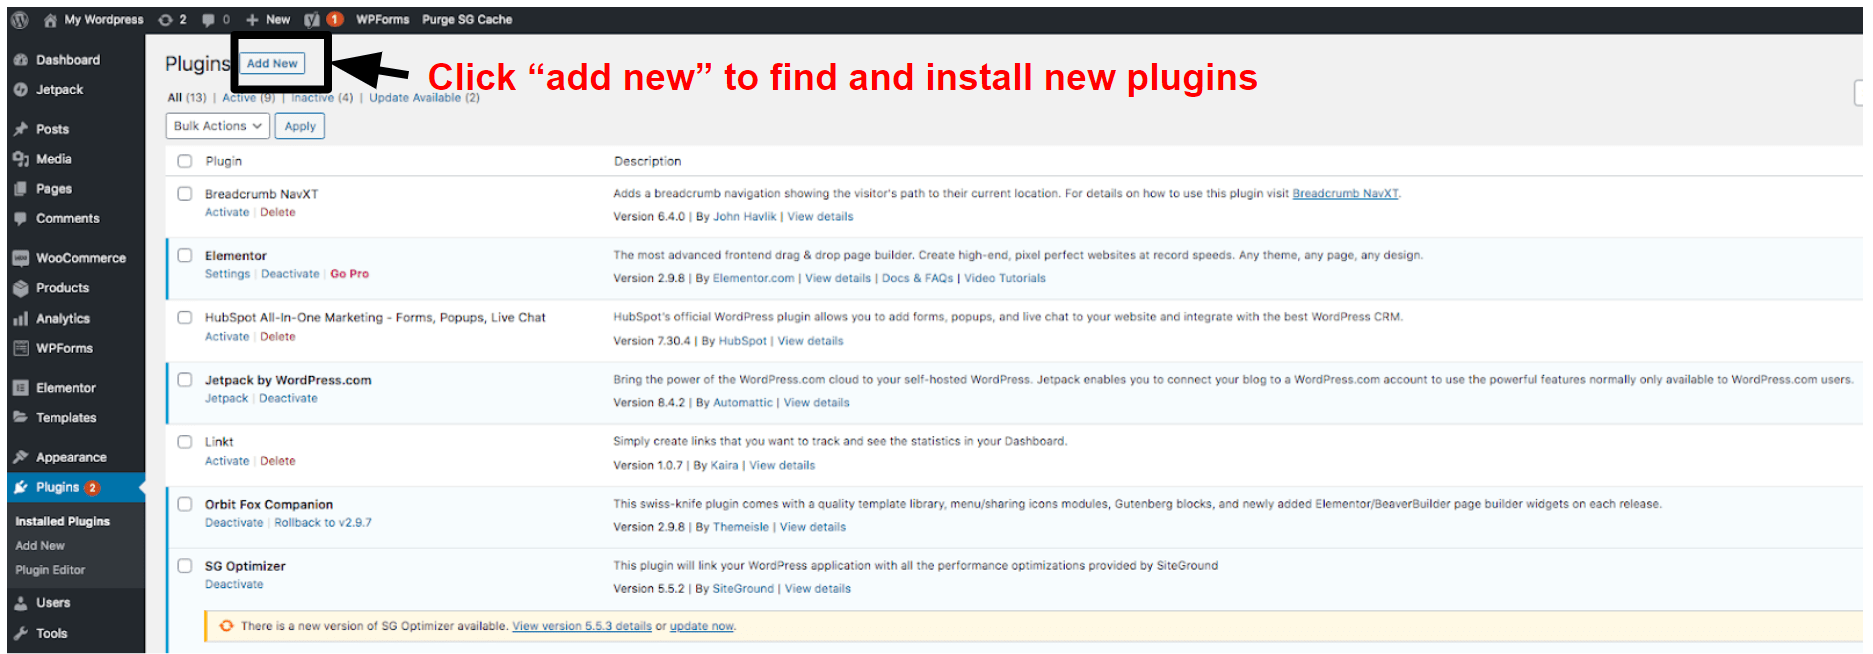 manage your installed plugins in WordPress